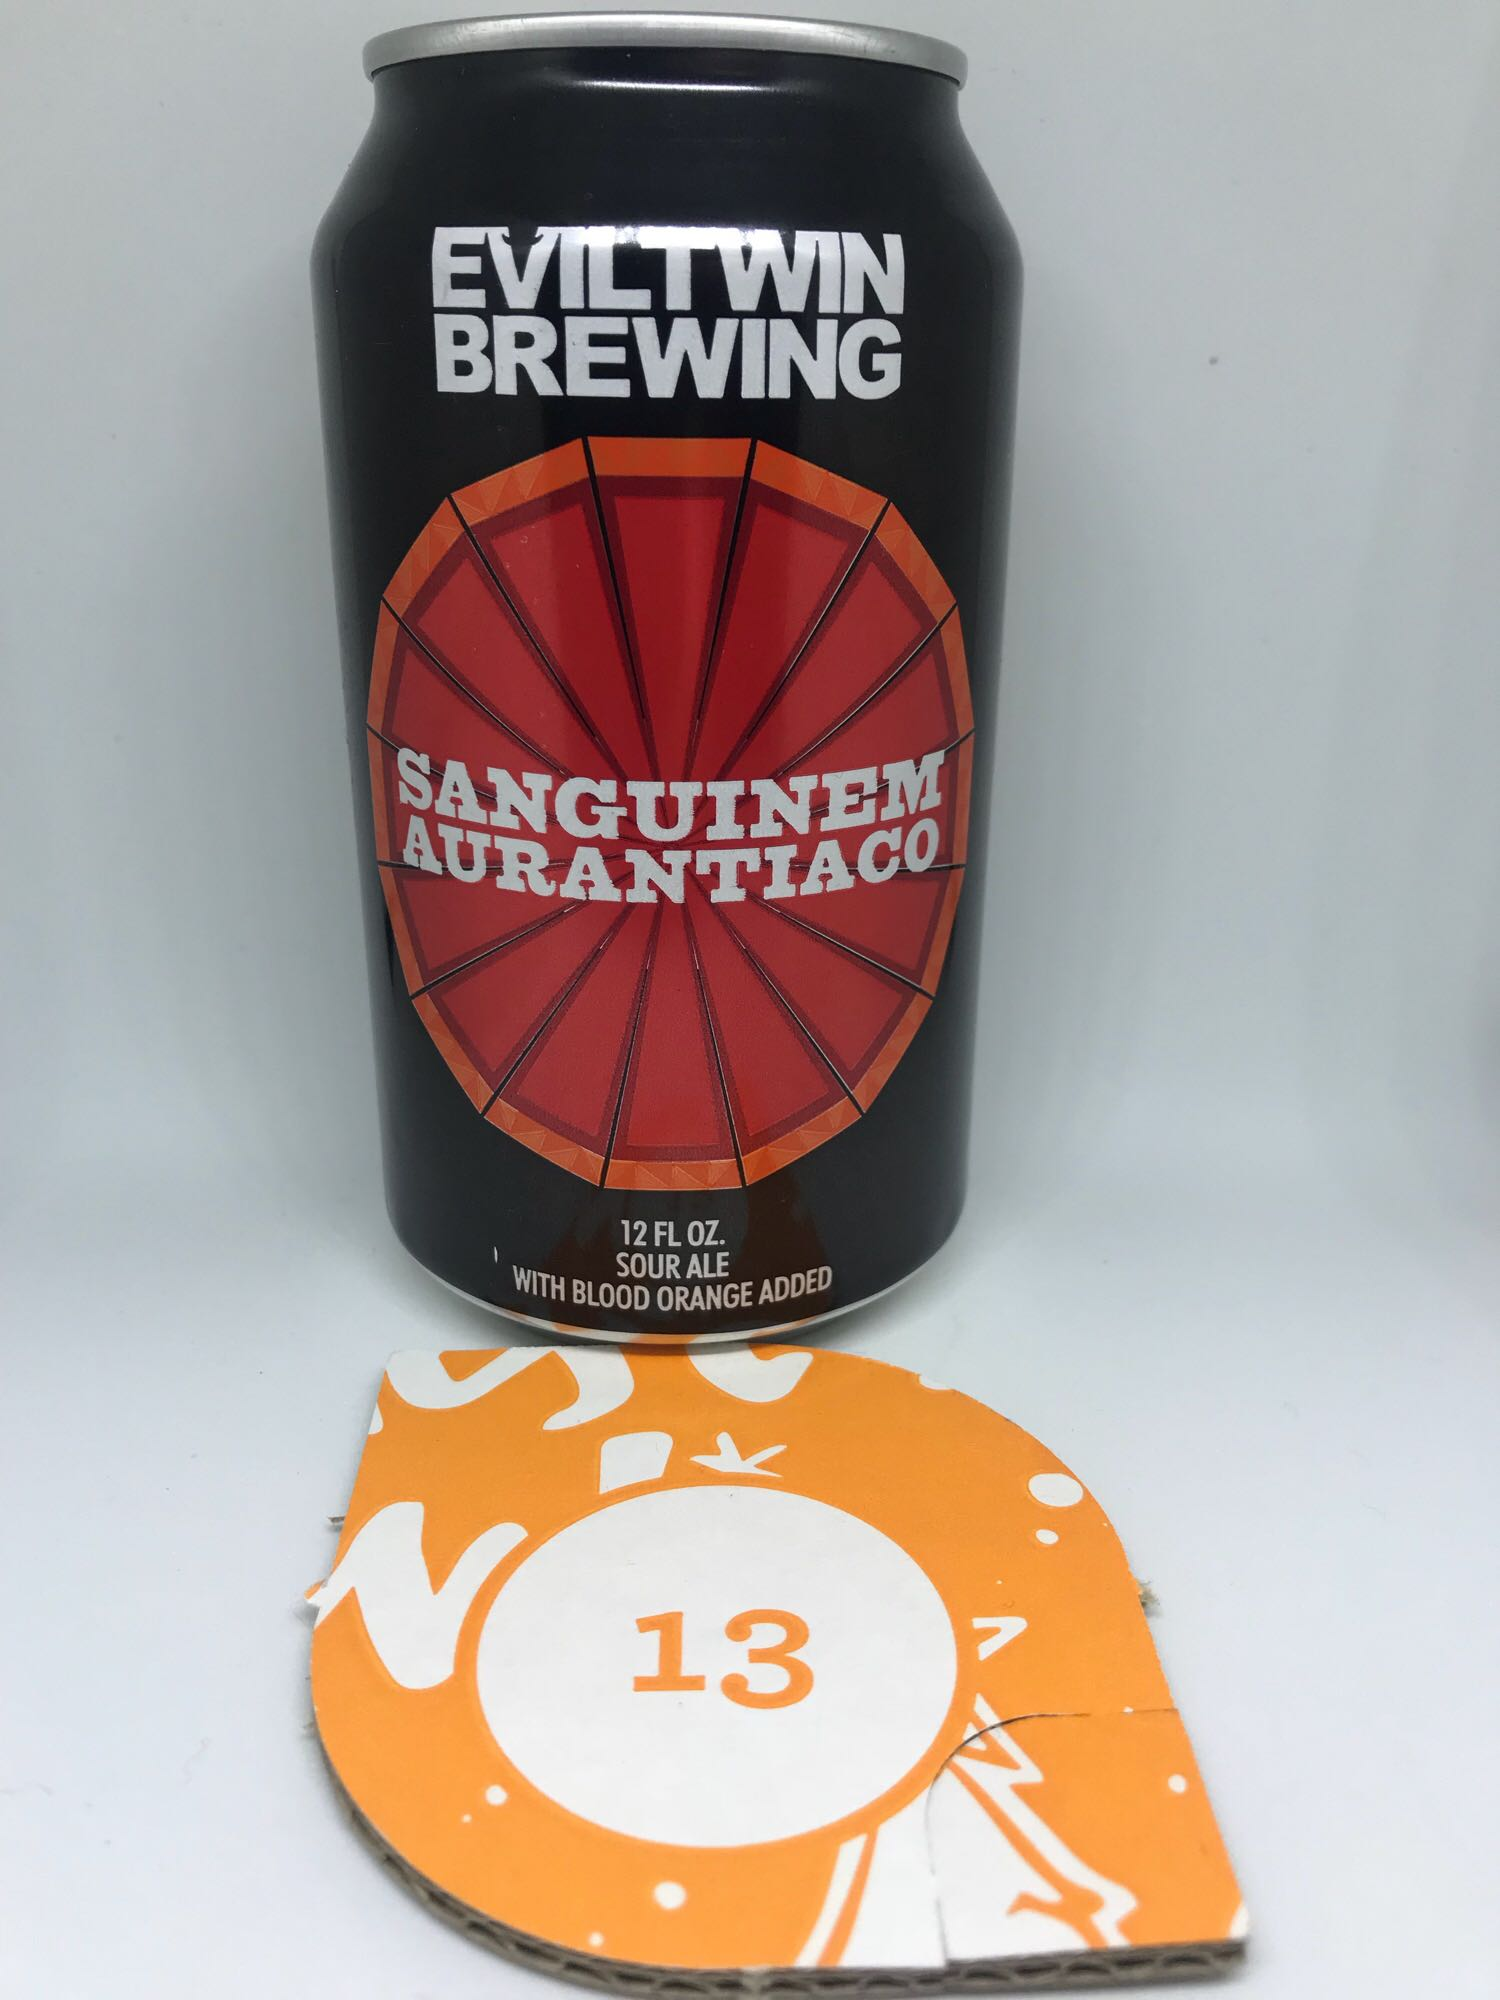 Day Thirteen: Sanguinem Aurantiaco - Sour Ale 3.25% // Evil Twin Brewing - 'Sanguinem Aurantiaco' is Latin for 'blood orange' so I was expecting a very bitter orange taste from the sour from Evil Twin Brewing. Sadly, there's not really any there at all.I'm a big fan of Evil Twin and so had pretty high hopes for this beer, the aroma bolstered these hopes even more so I was a bit letdown on first sip. Don't get me wrong, it's a fine sour but I'd never guess it was meant to be a blood orange sour unless I'd seen the can. At 3.25% it's the lowest ABV so far and I've drank it very quickly so this probably sounds harsher than it's meant to. Bit of a disappointment on the whole but you can't win 'em all I suppose. Onwards and upwards hopefully.